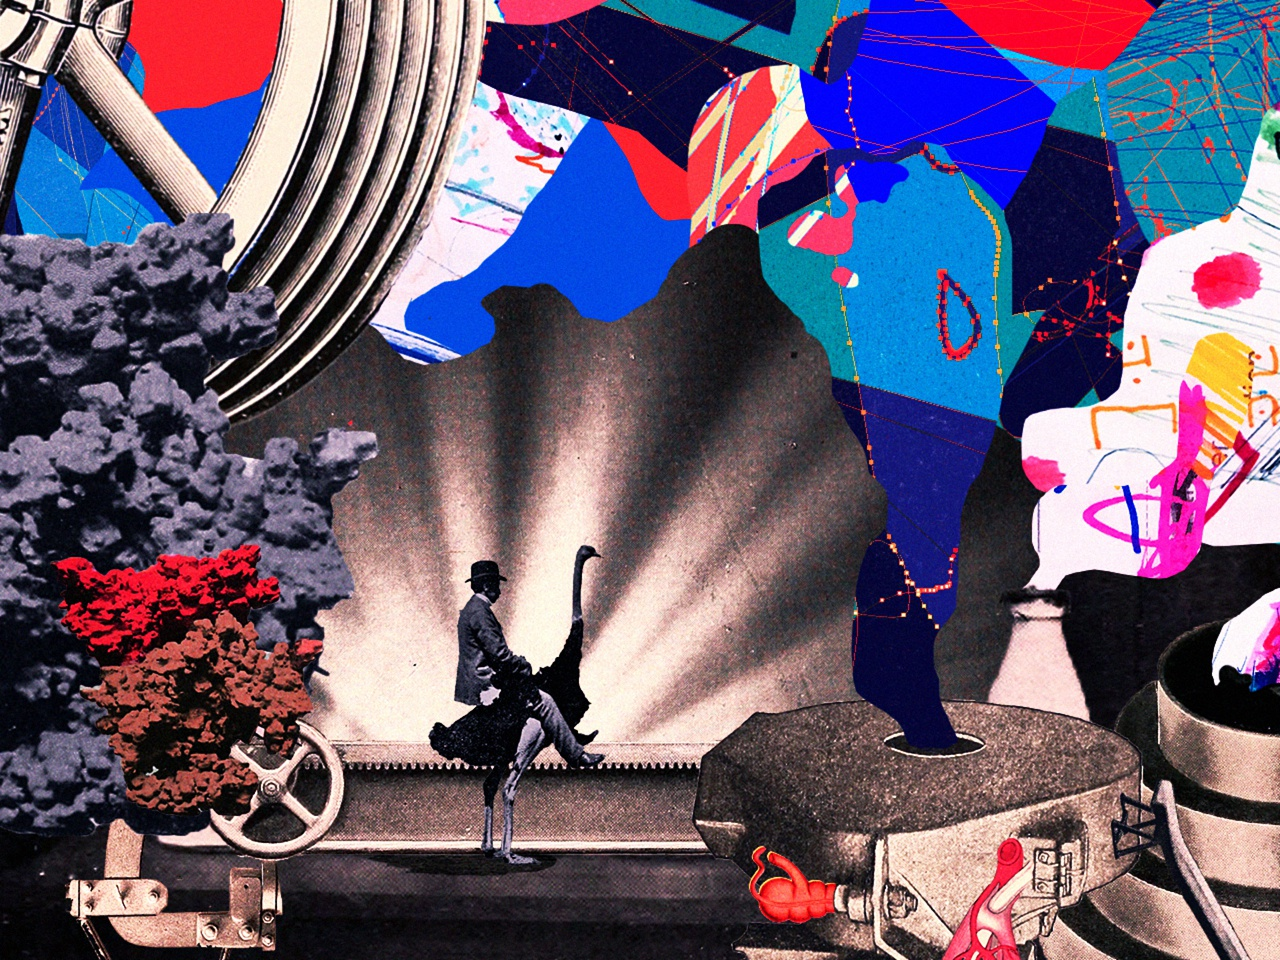 Land of a Thousand Volcanoes technology sci-fi fantasy machine rider colorful surreal collage graphic design illustration